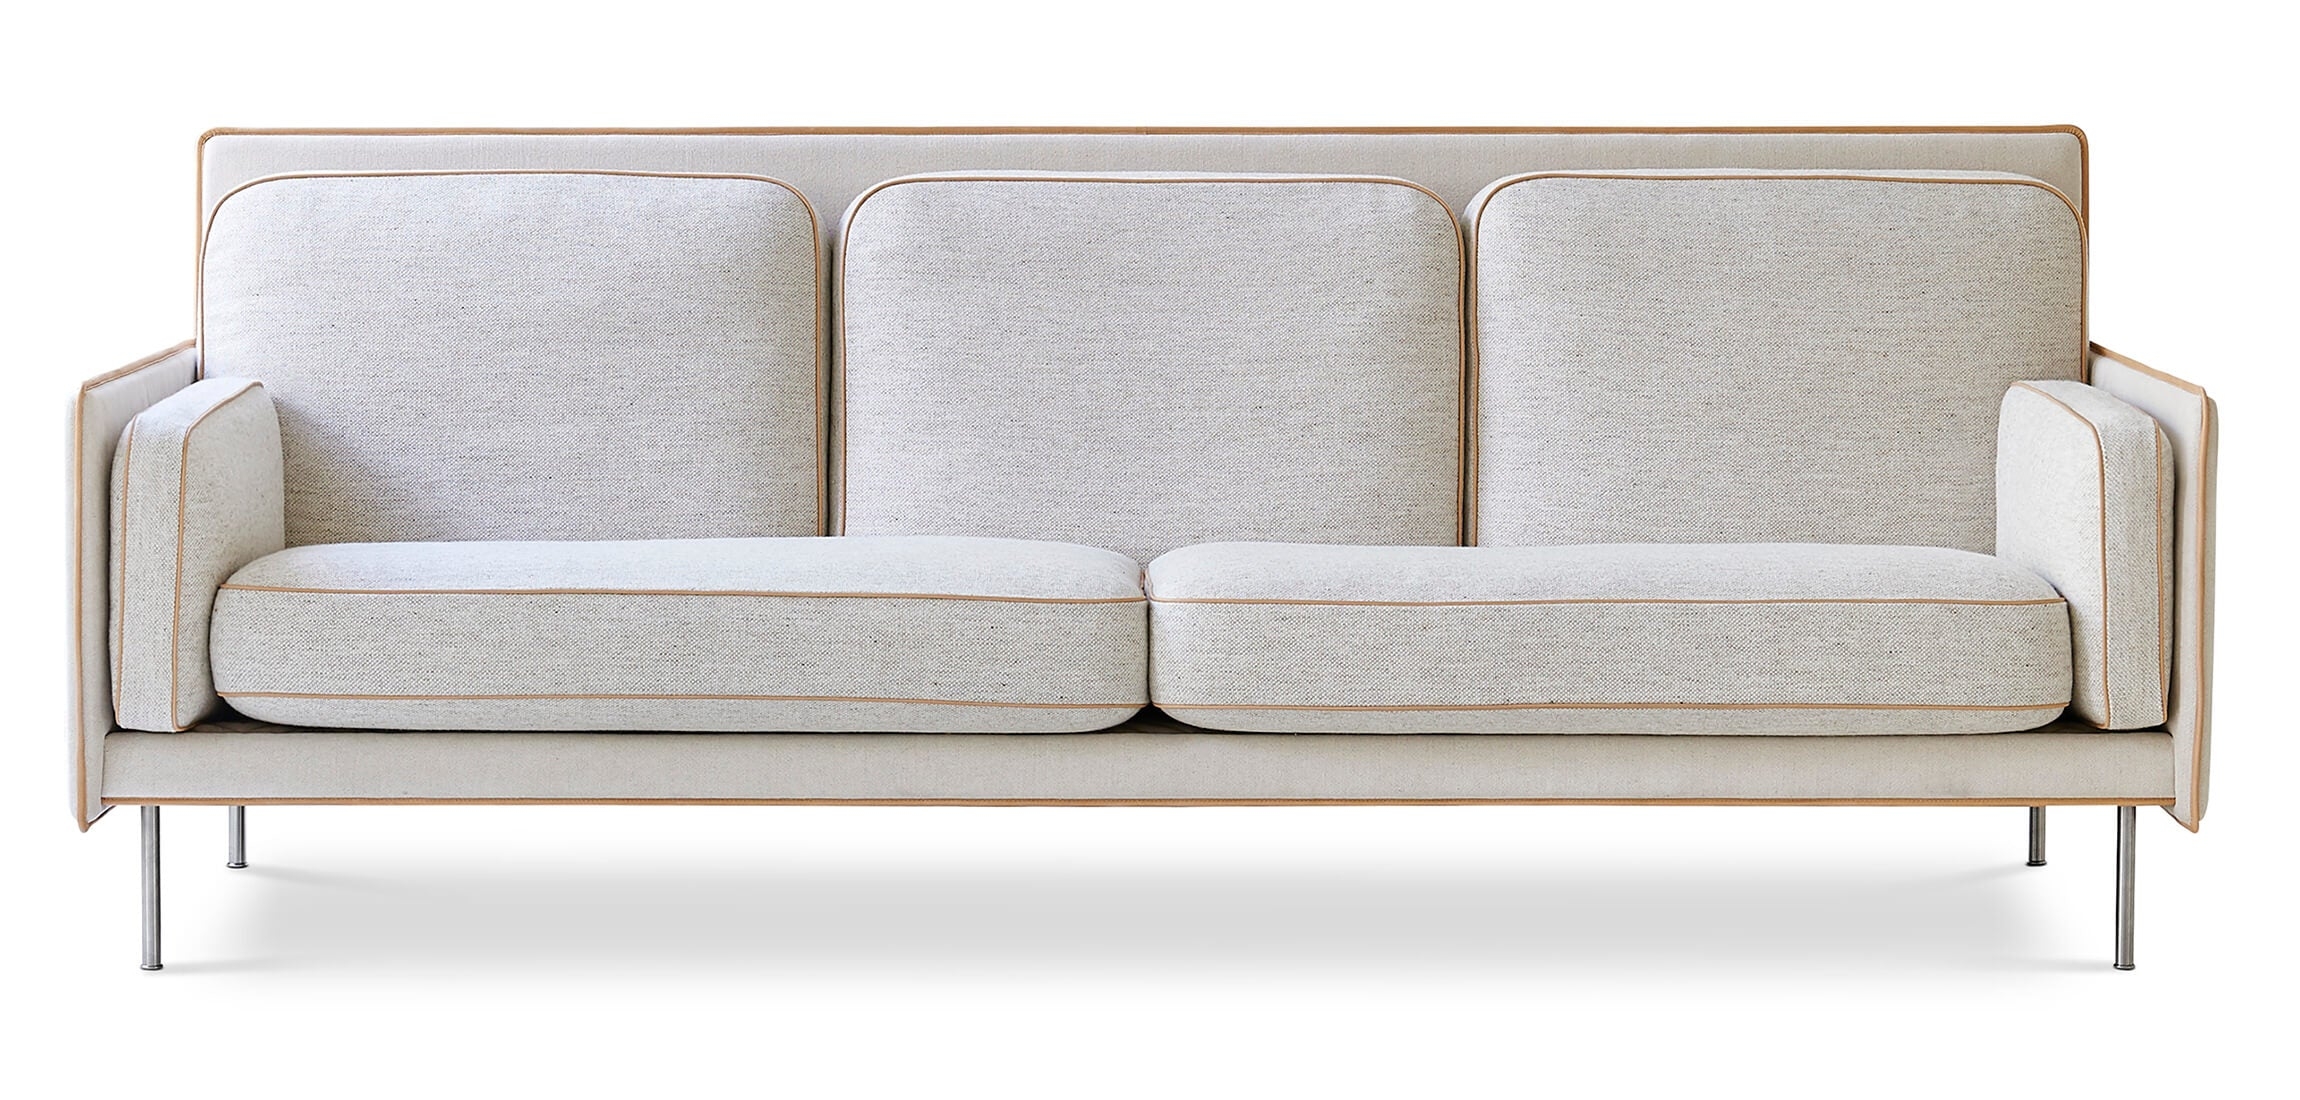 Hector 3-seater Sofa